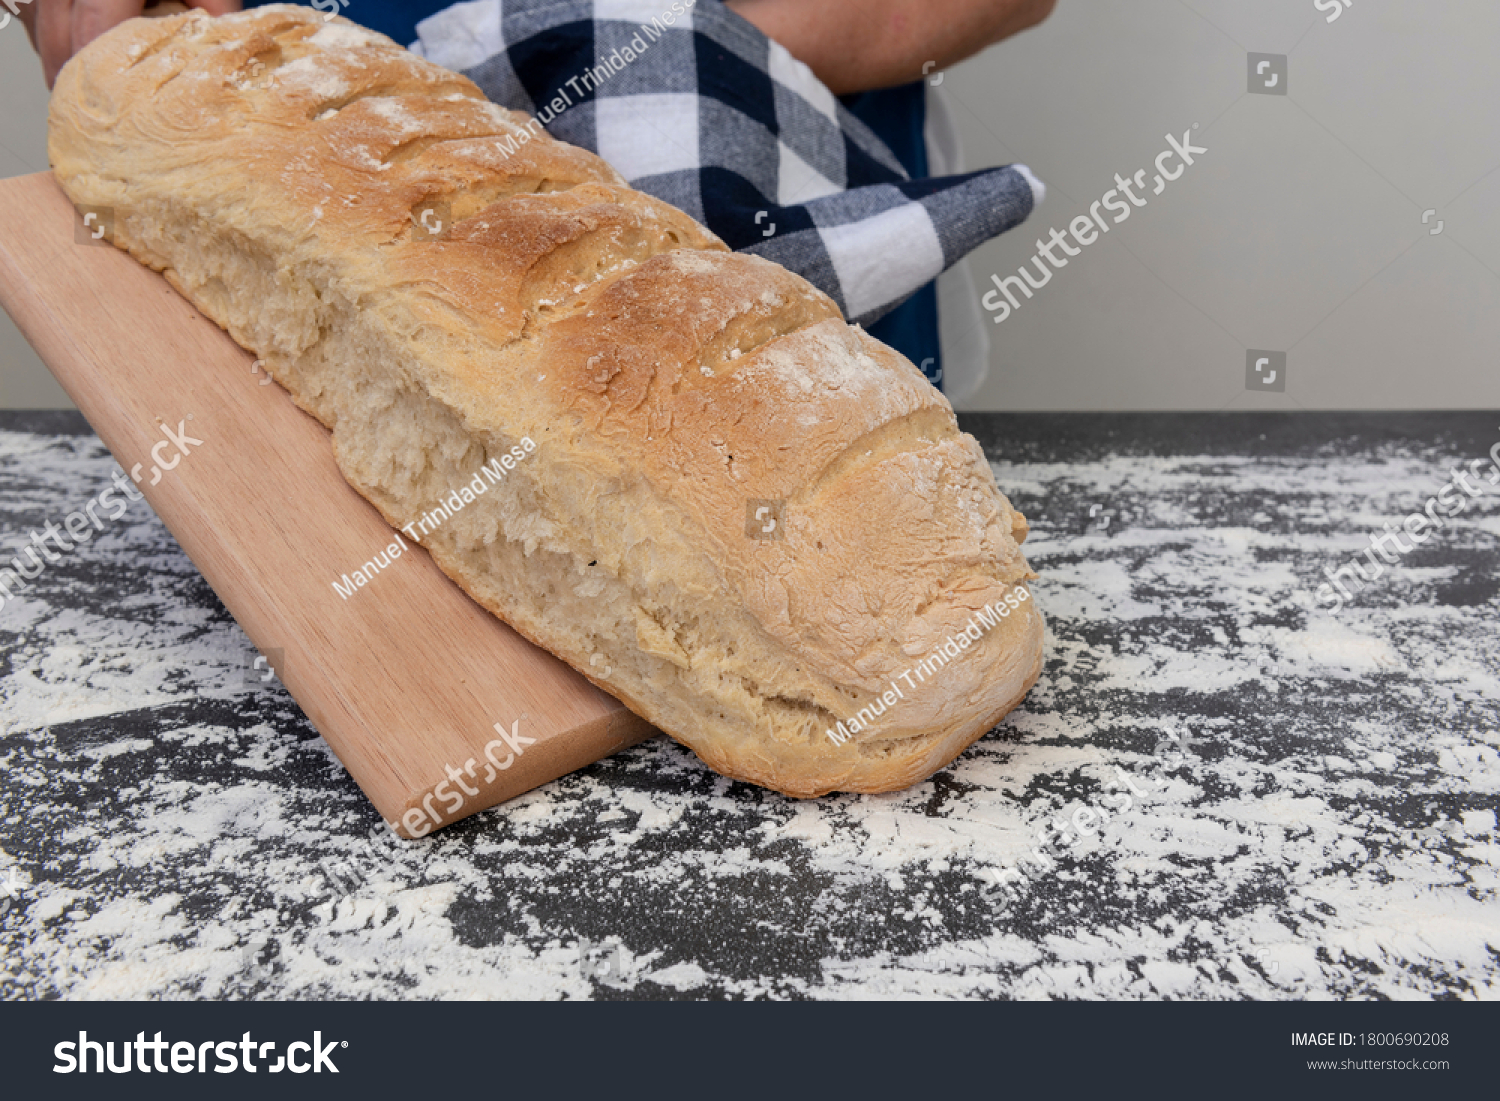 Person places hot bread from oven on table